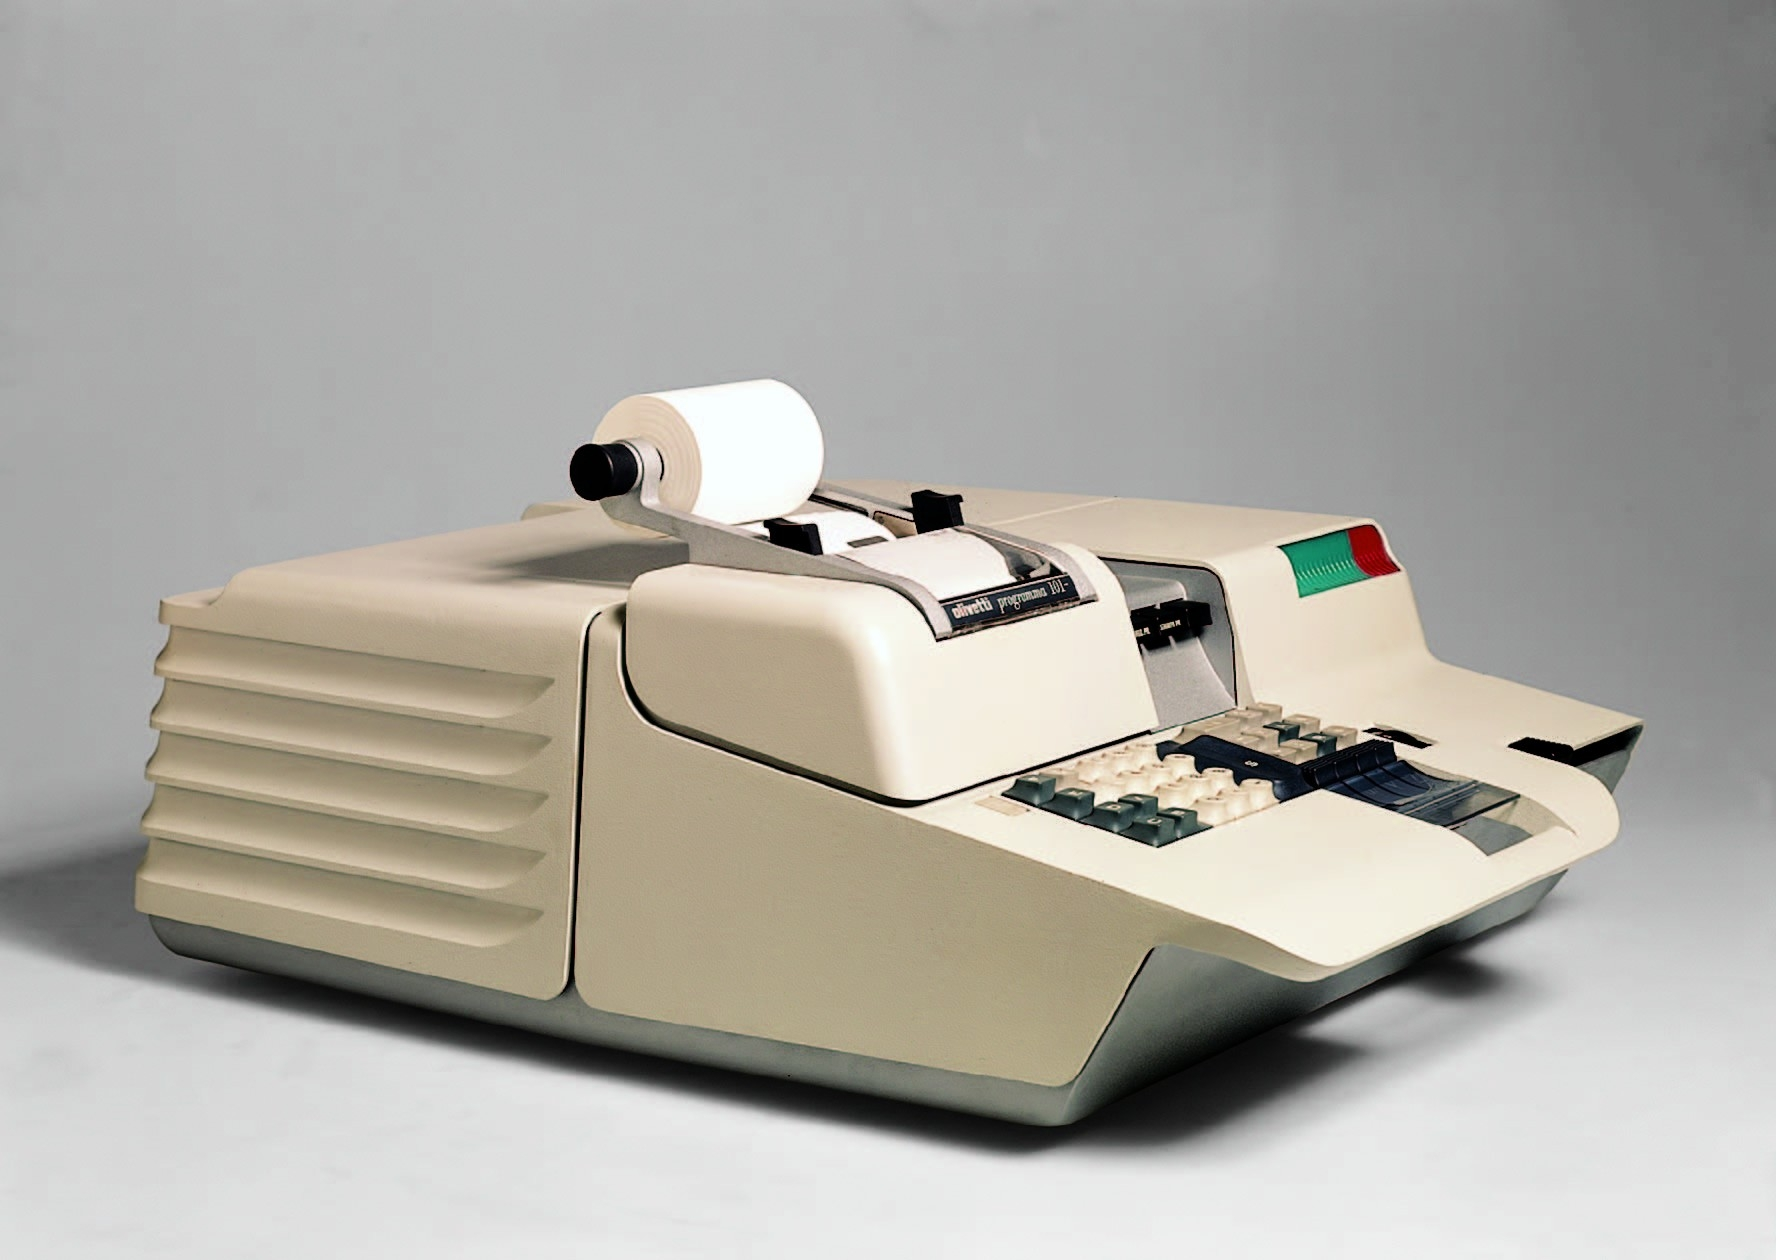 OLIVETTI: FROM THE P101 TO THE 3D-S2 PRINTER, 50 YEARS OF ITALIAN ...